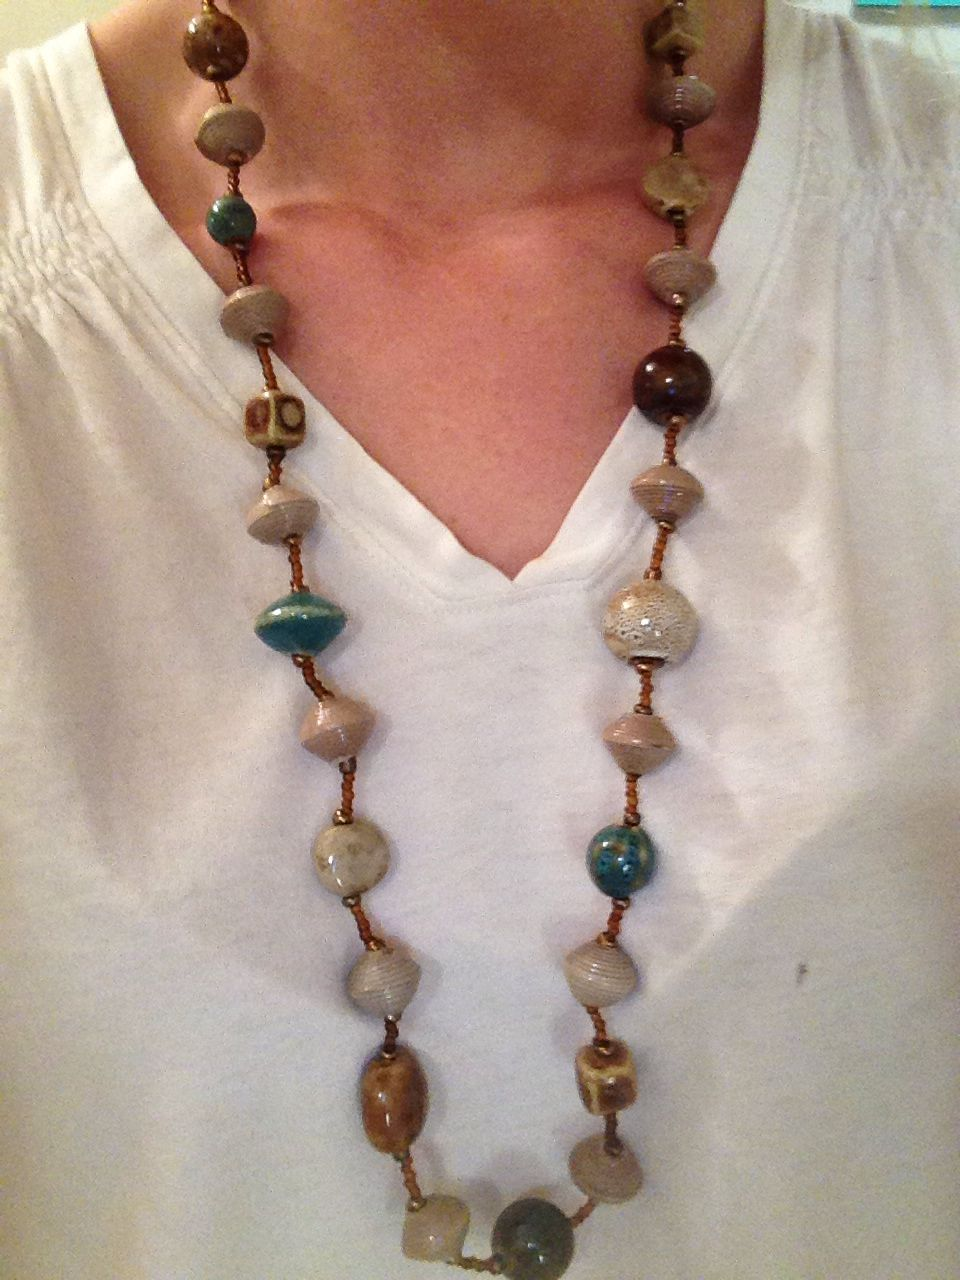 Beautiful clay beads and cereal box beads from Haiti make this awesome Oceans Necklace one of the prettiest fall trends. The soft neutrals w a punch of blue compliment any outfit. #tradesofhope #leslietradesofhope mytradesofhope.com/lesliehouck